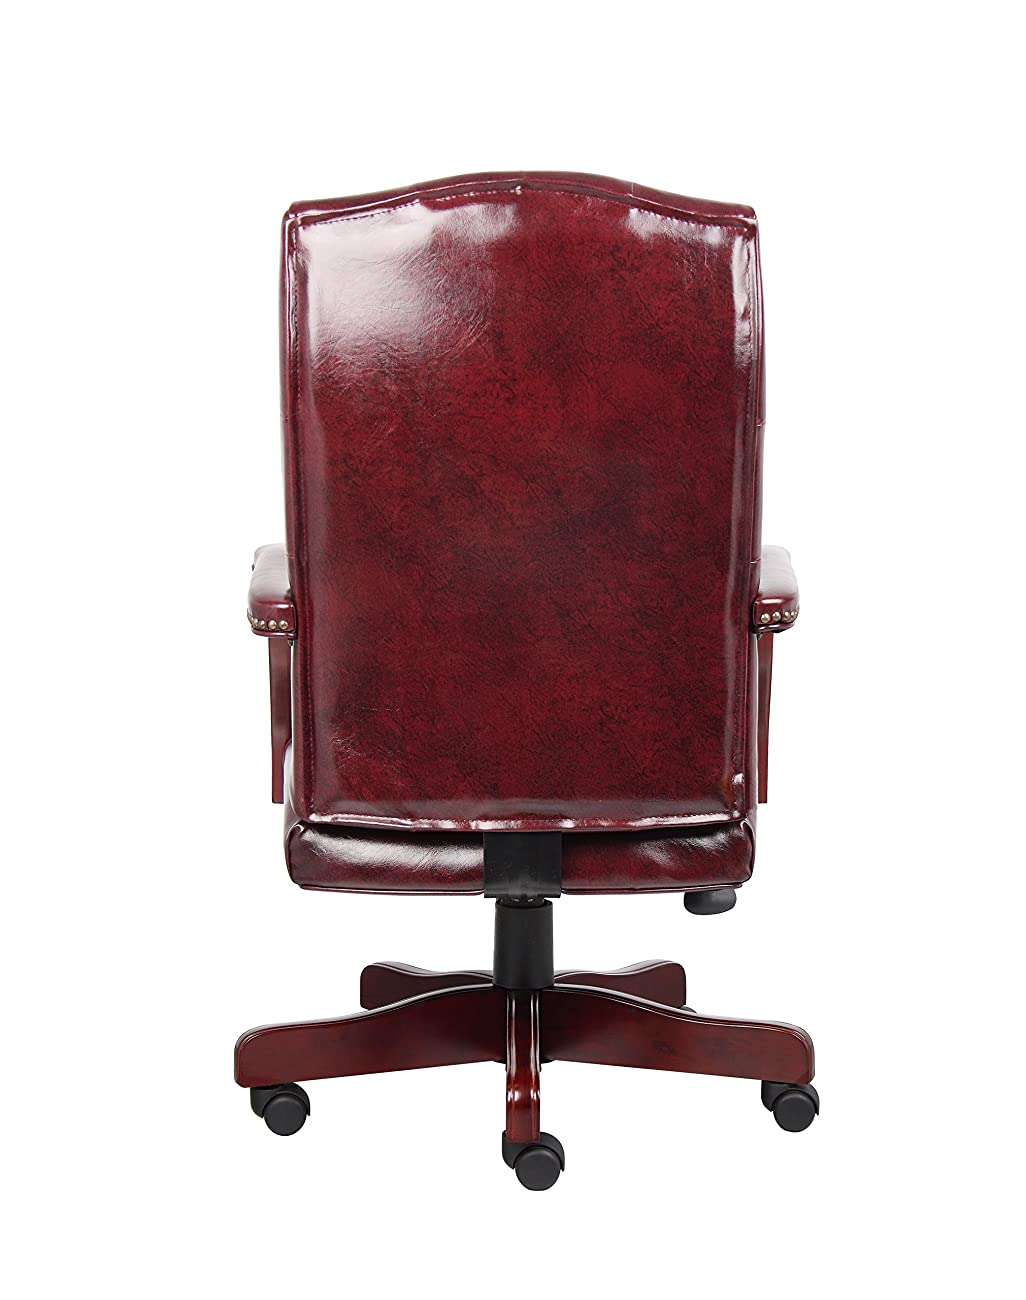 Boss Office Products B905-BY Classic Executive Caressoft Chair with Mahogany Finish in Burgundy 1